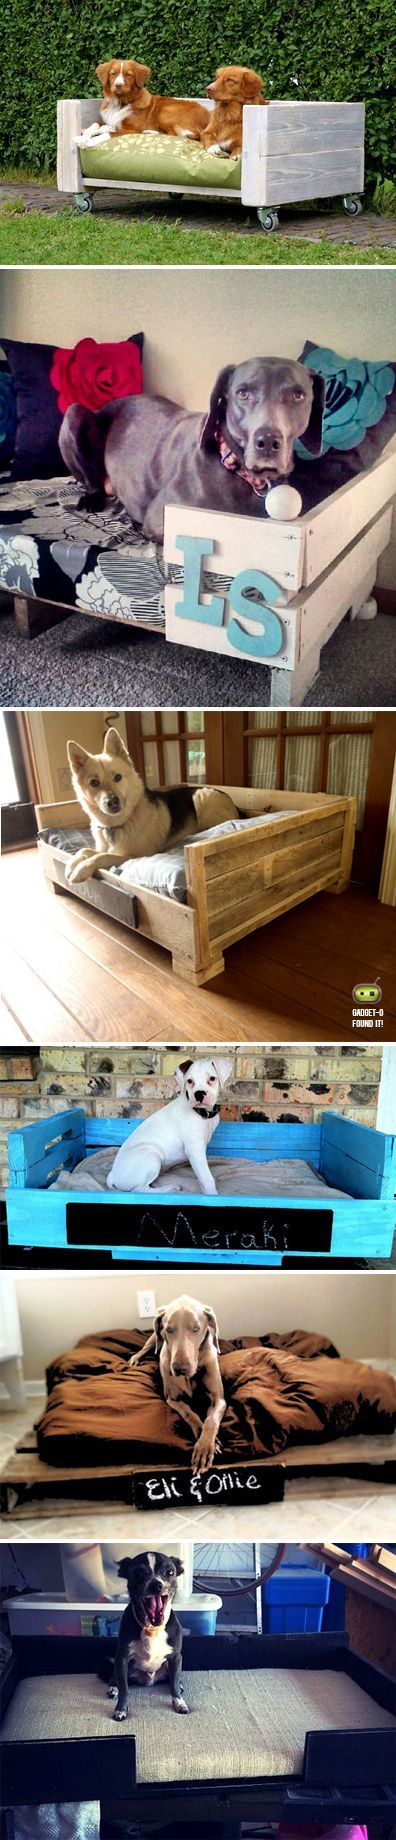 DIY pallet beds for pets! I love love love Pet beds! #pet #bed